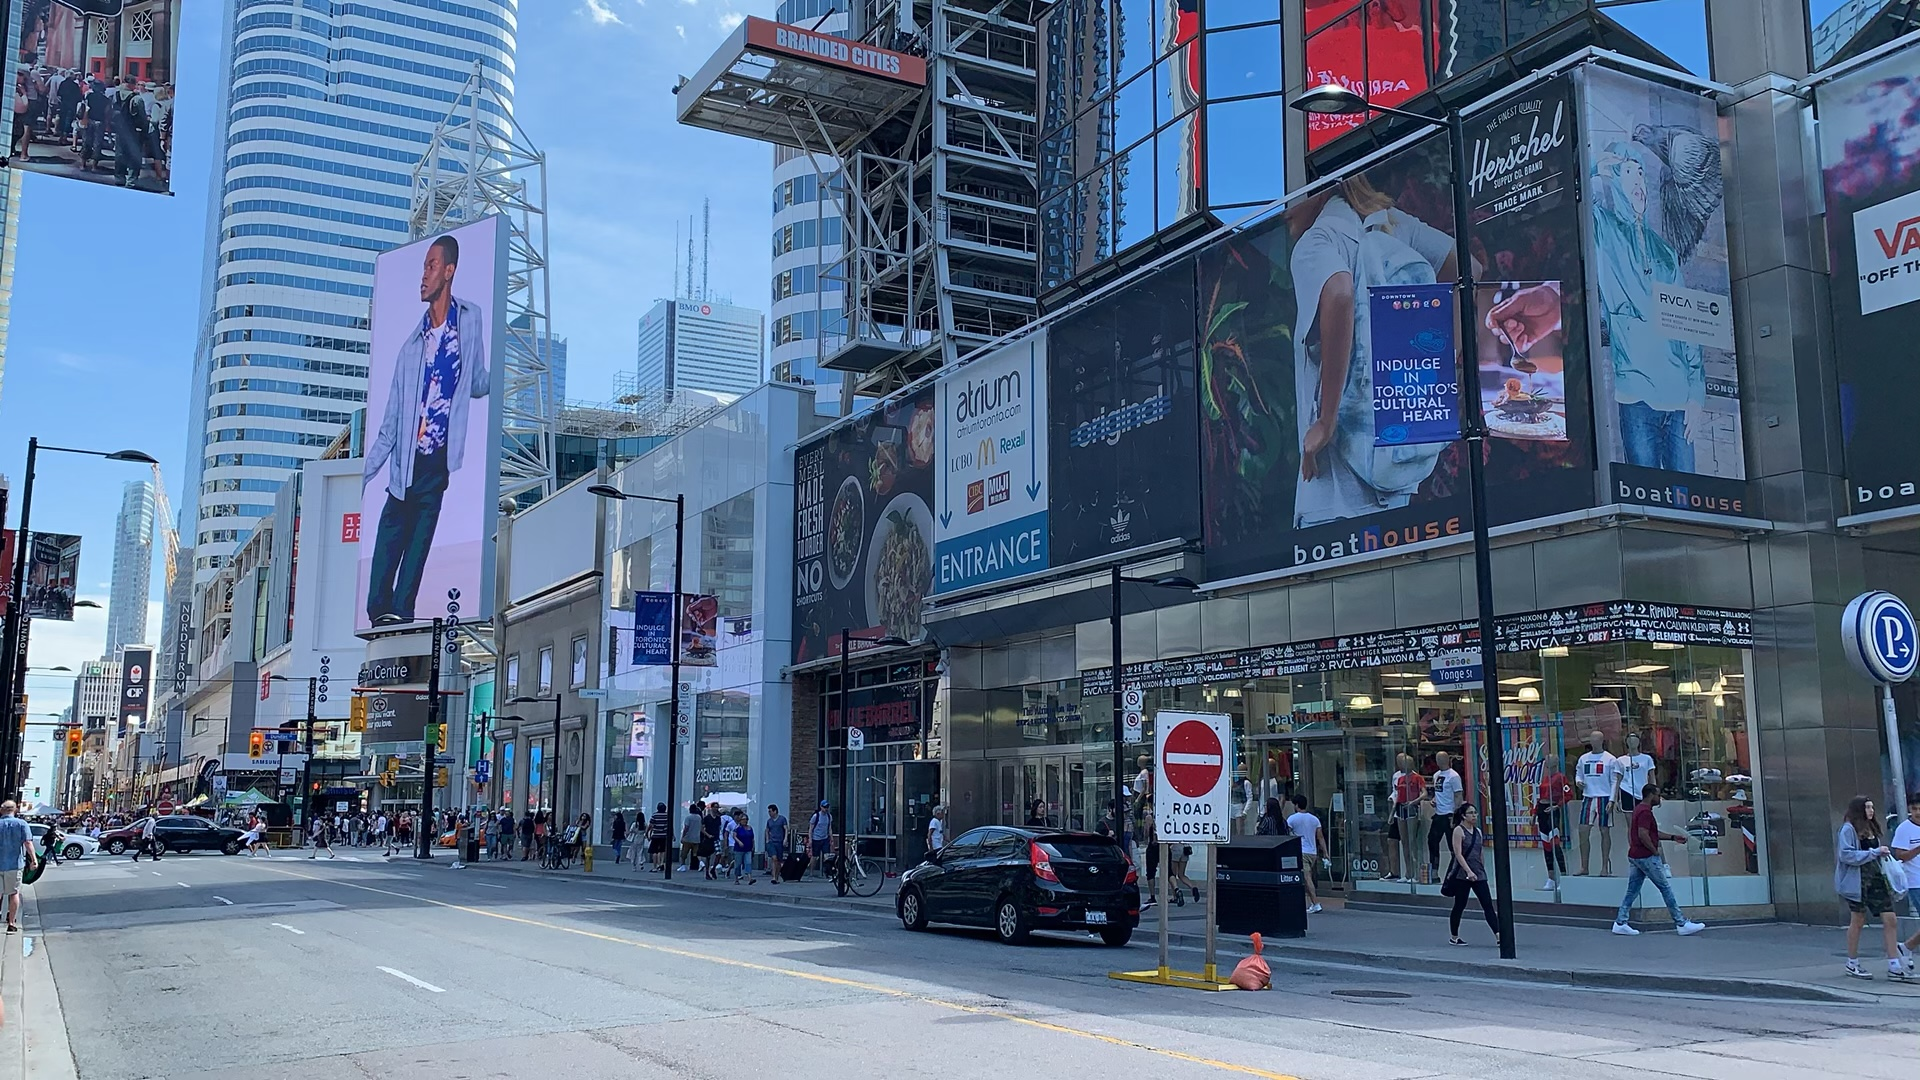 Photo of Yonge and Dundas in Toronto with large billboards people walking on street.